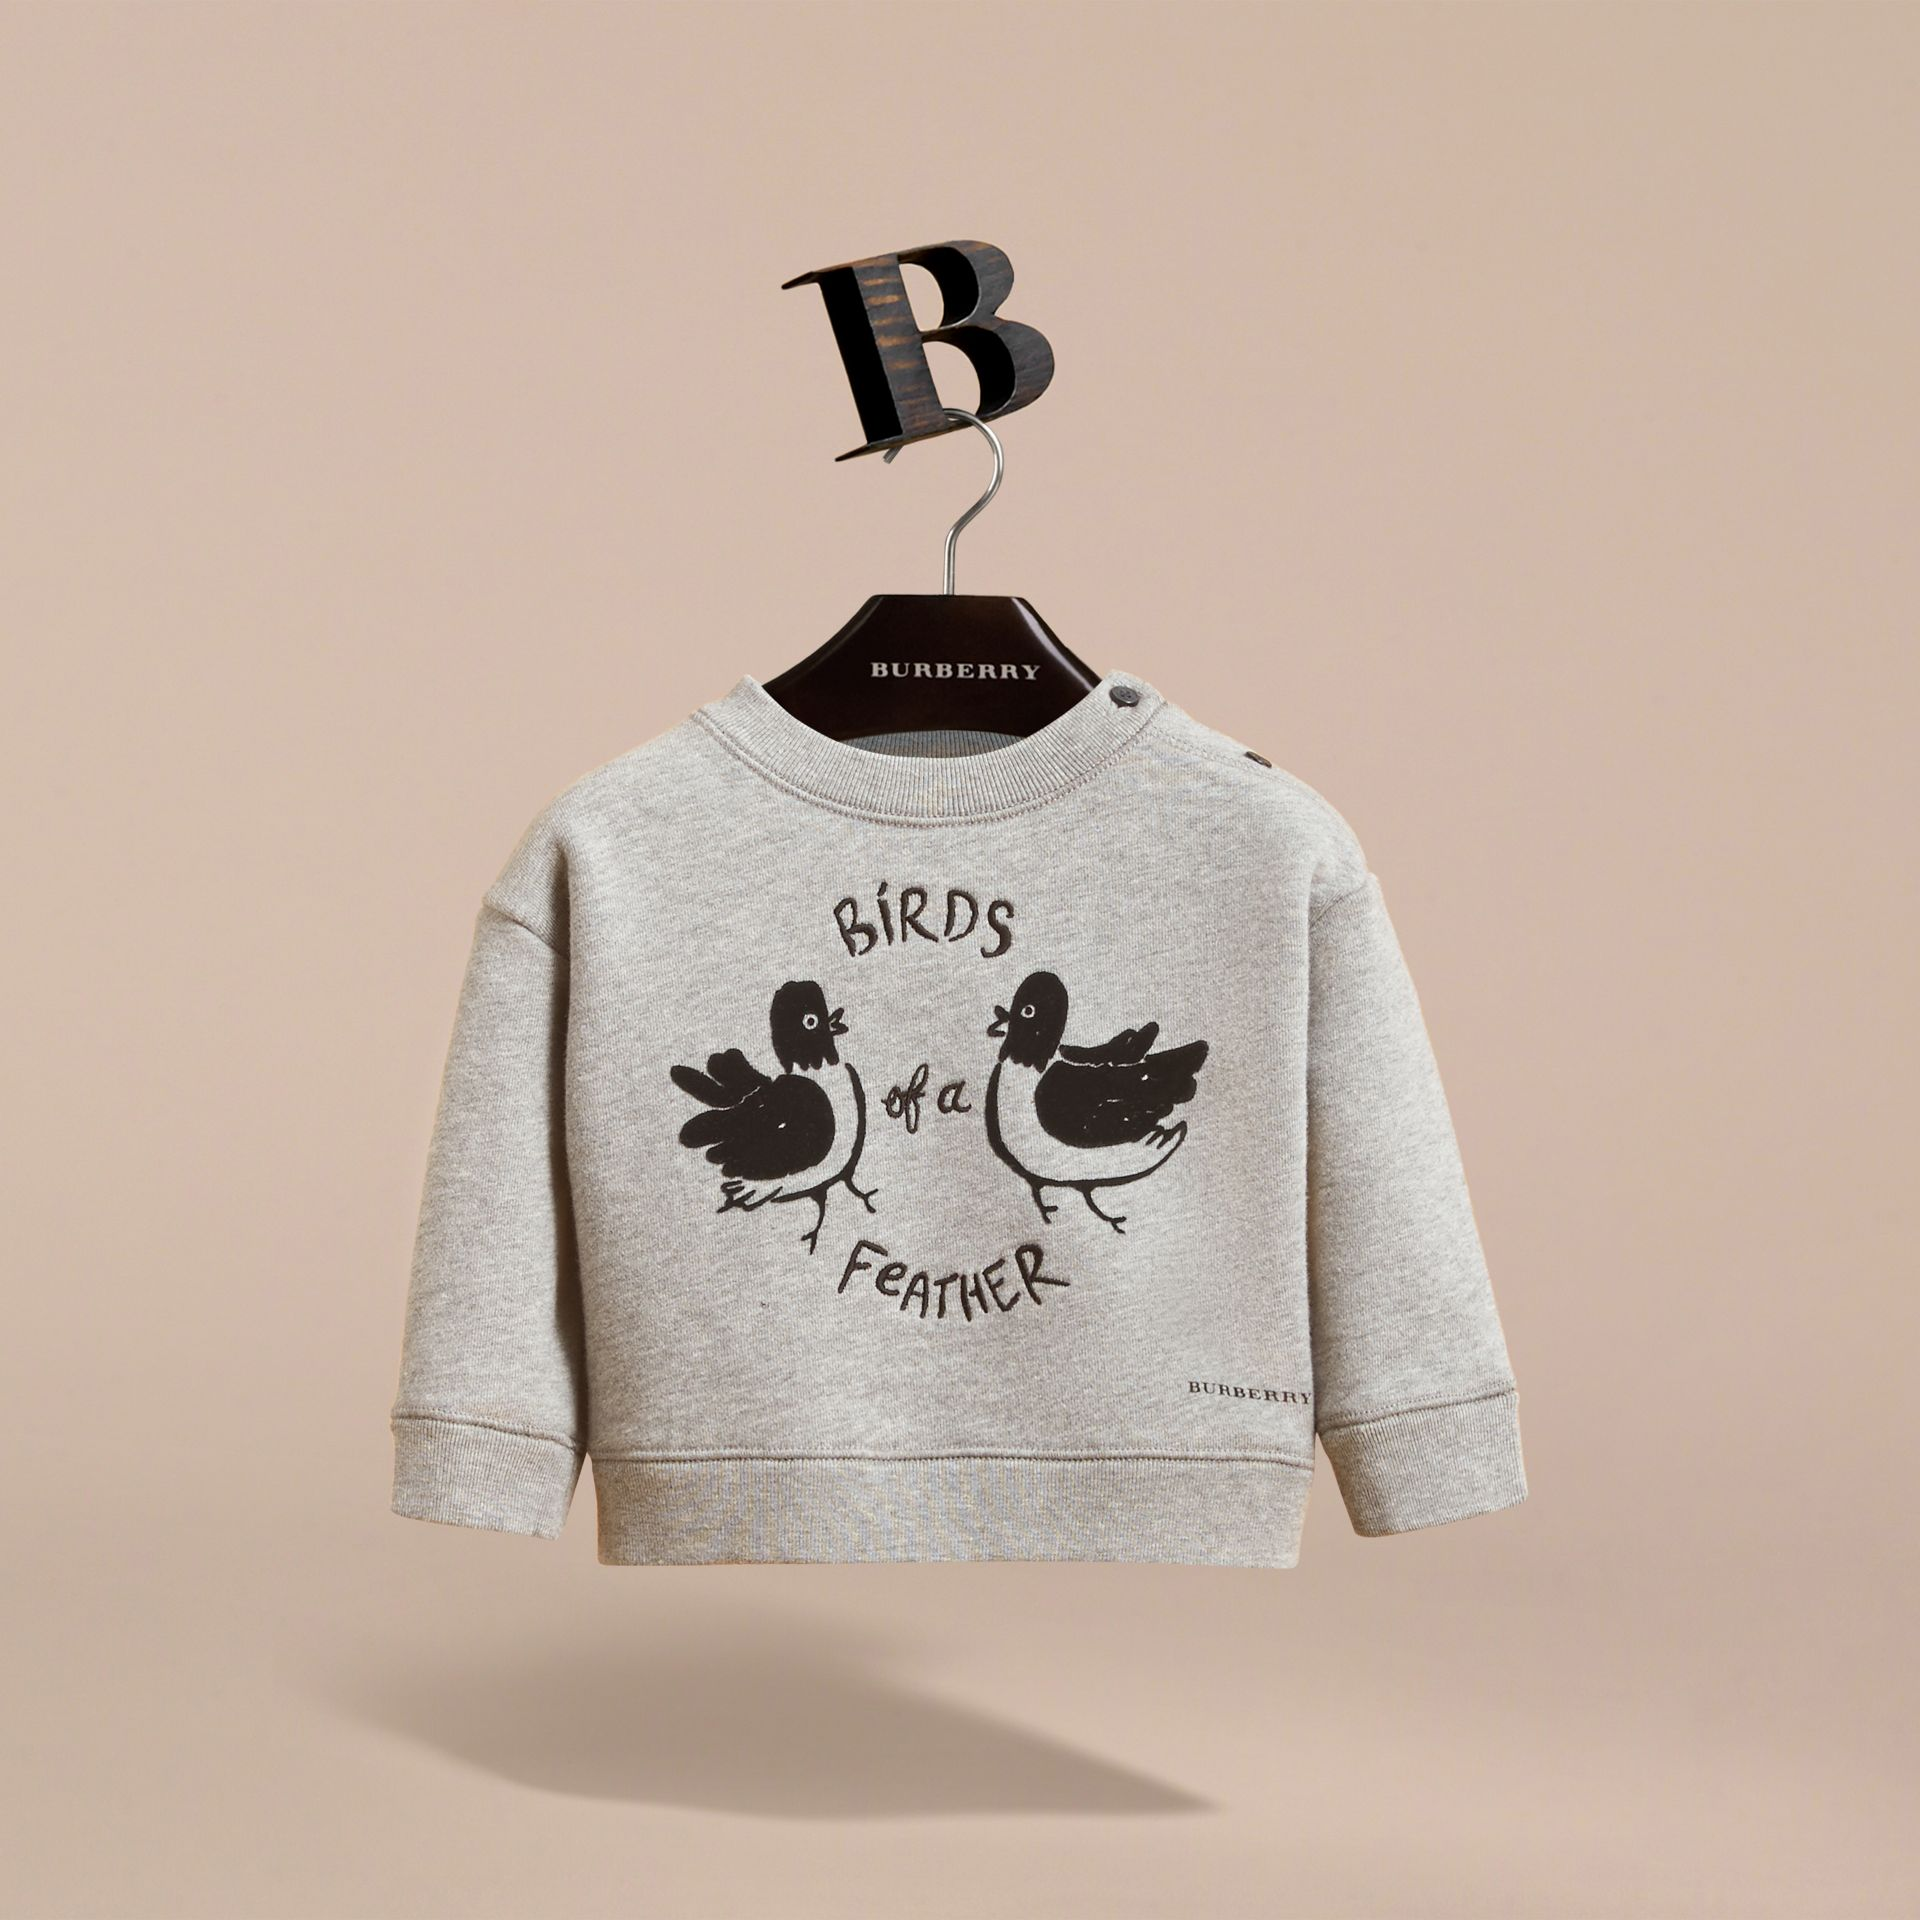 Sweat-shirt en coton avec motif Birds of a Feather (Camaïeu De Gris) | Burberry - photo de la galerie 3